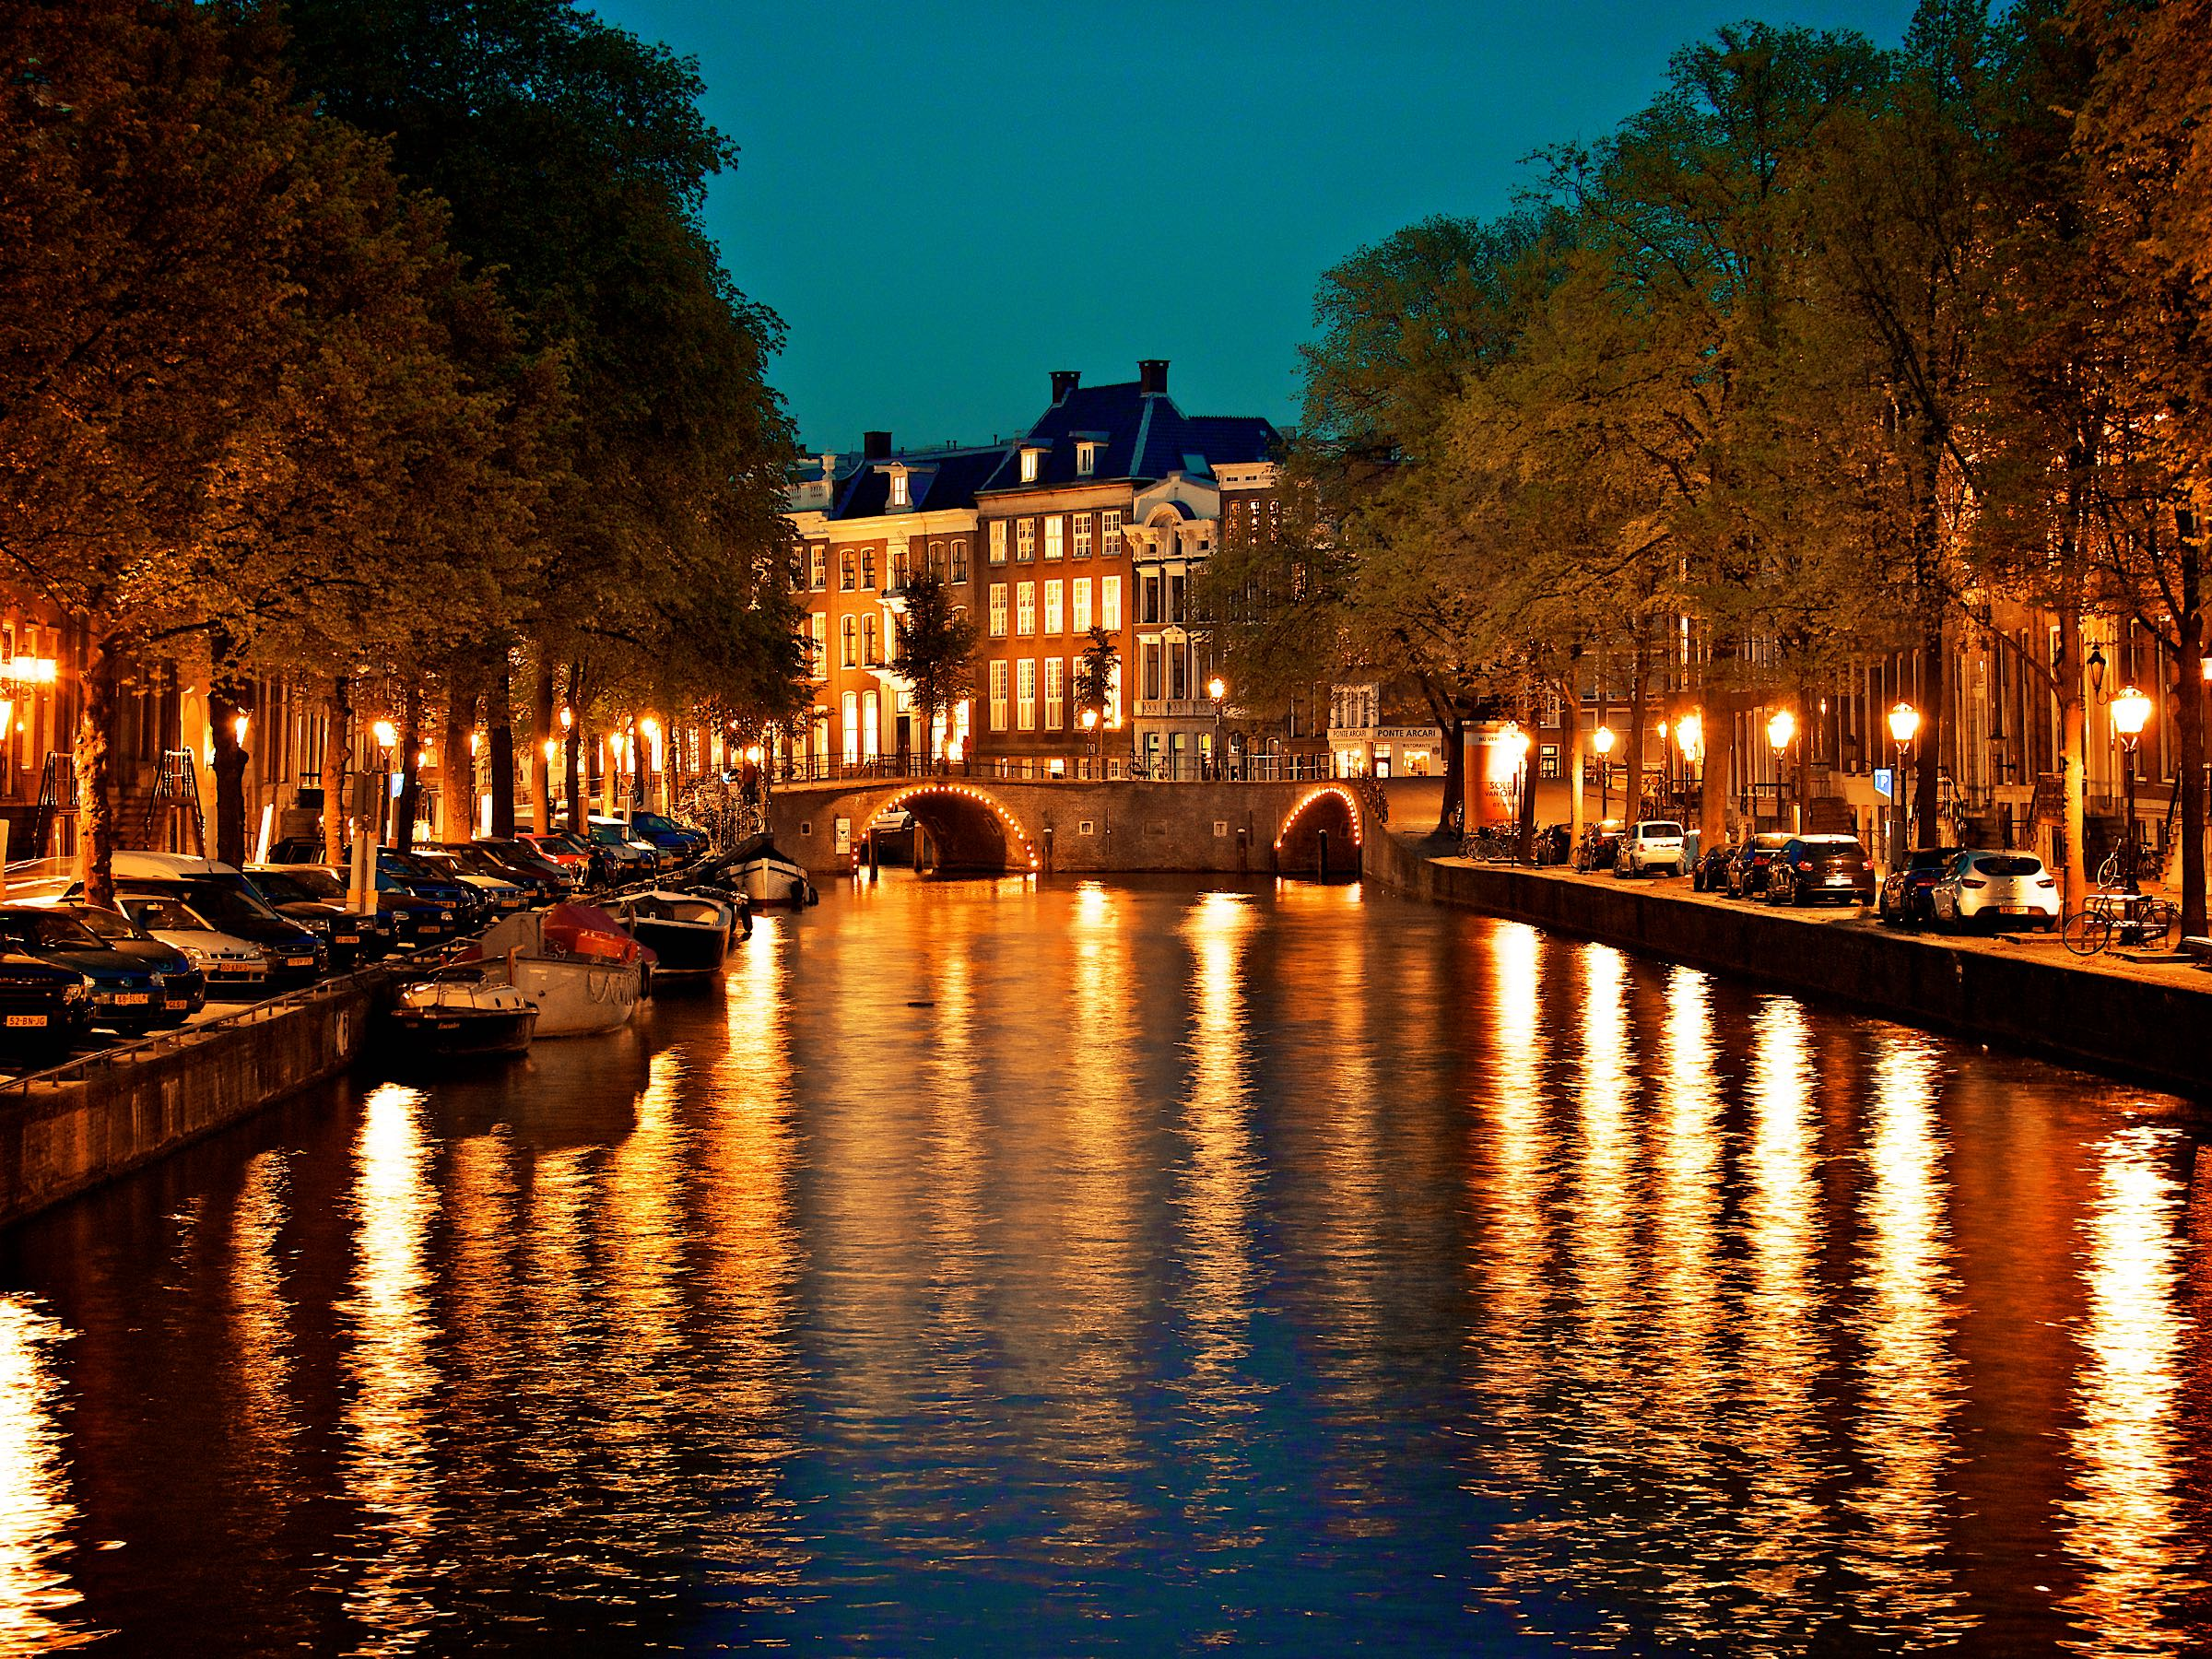 Nightly Canals